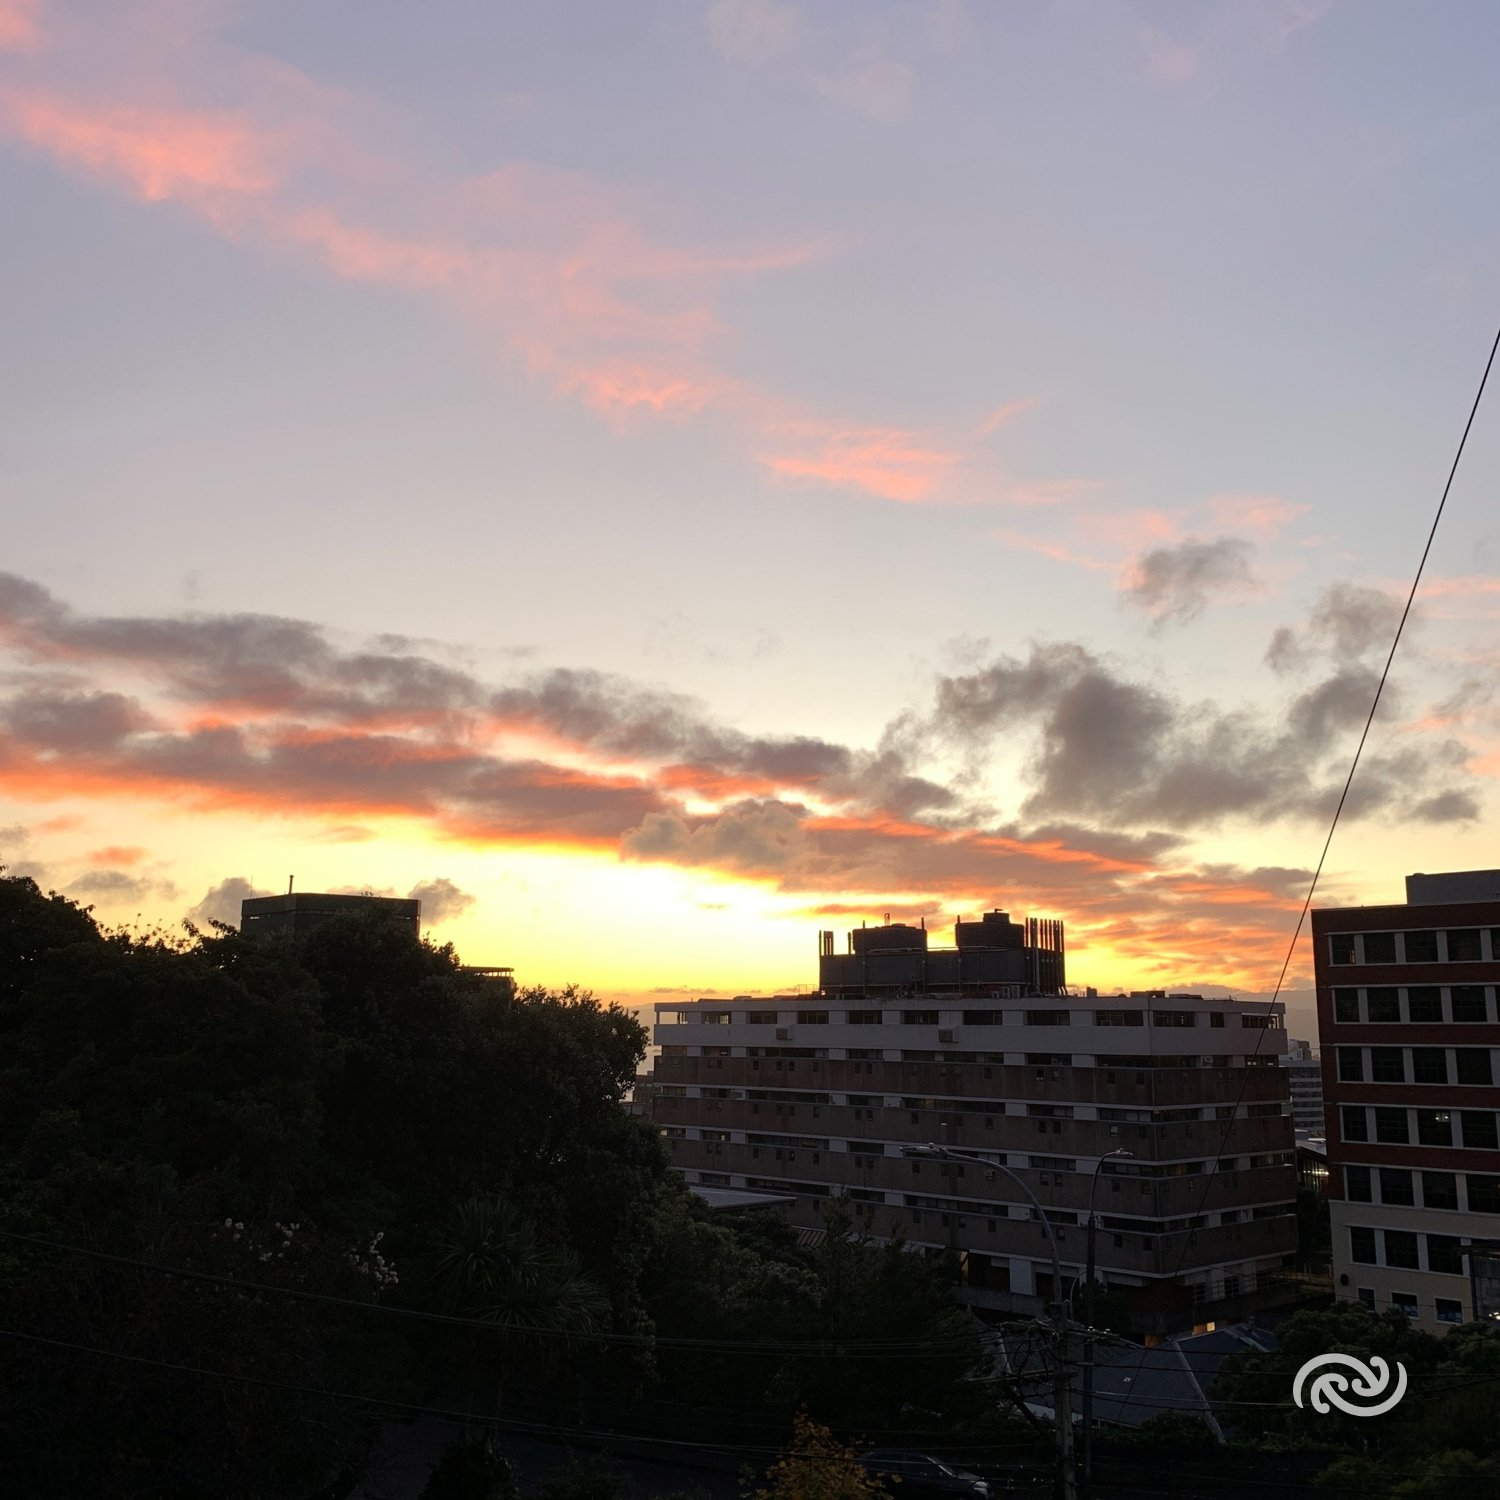 Clear skies and light northerlies to start the day in Wellington. Much of the country will have a similar view this morning as a ridge of high pressure brings settled conditions. MetService.com for more info ^Lewis